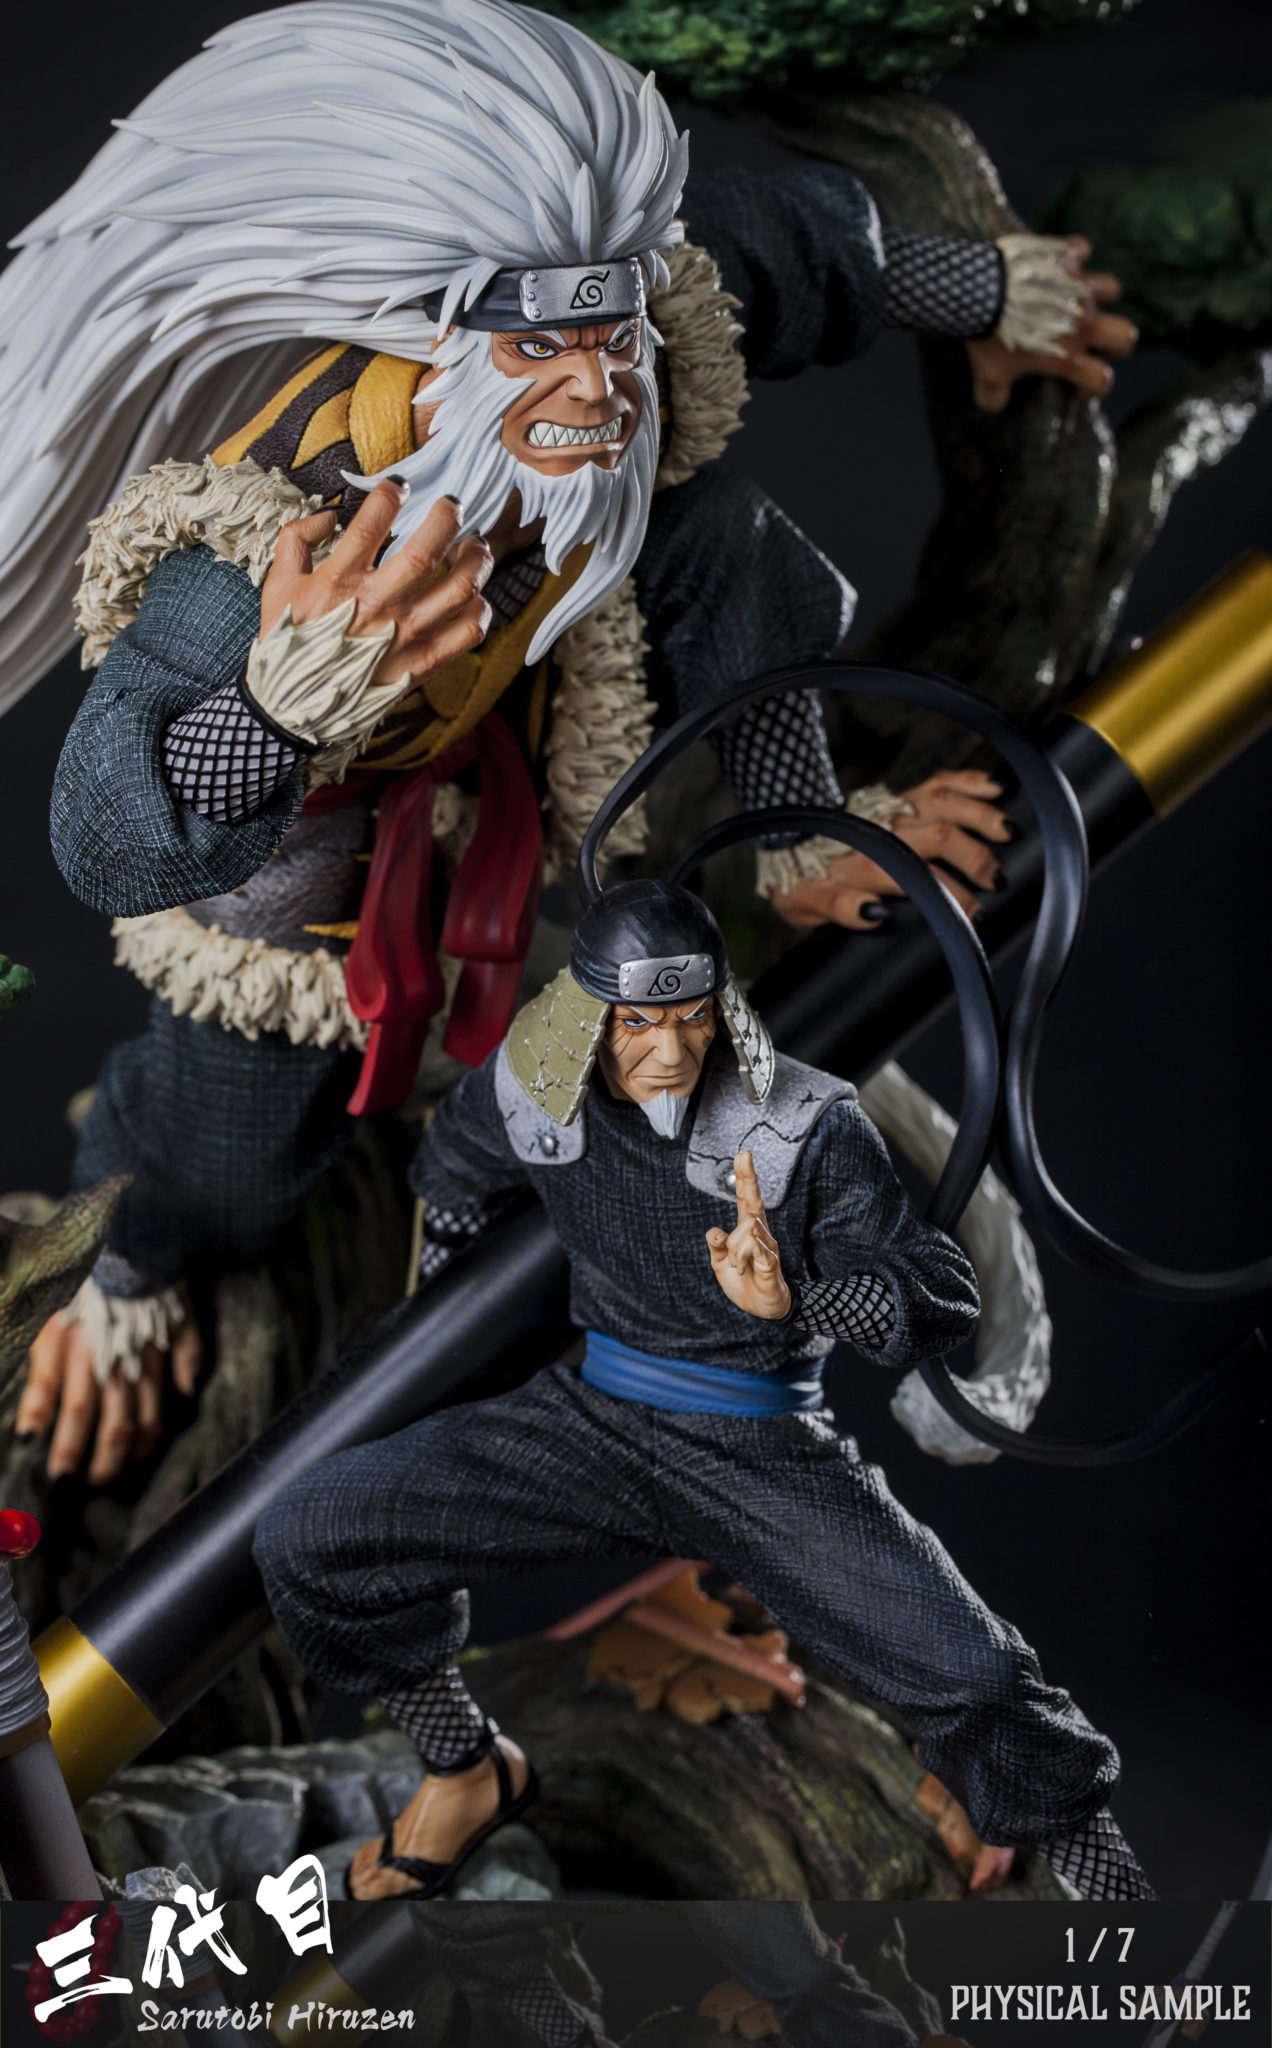 Clouds Studio Hiruzen Sarutobi 1/7 Scale Statue Closeup 2